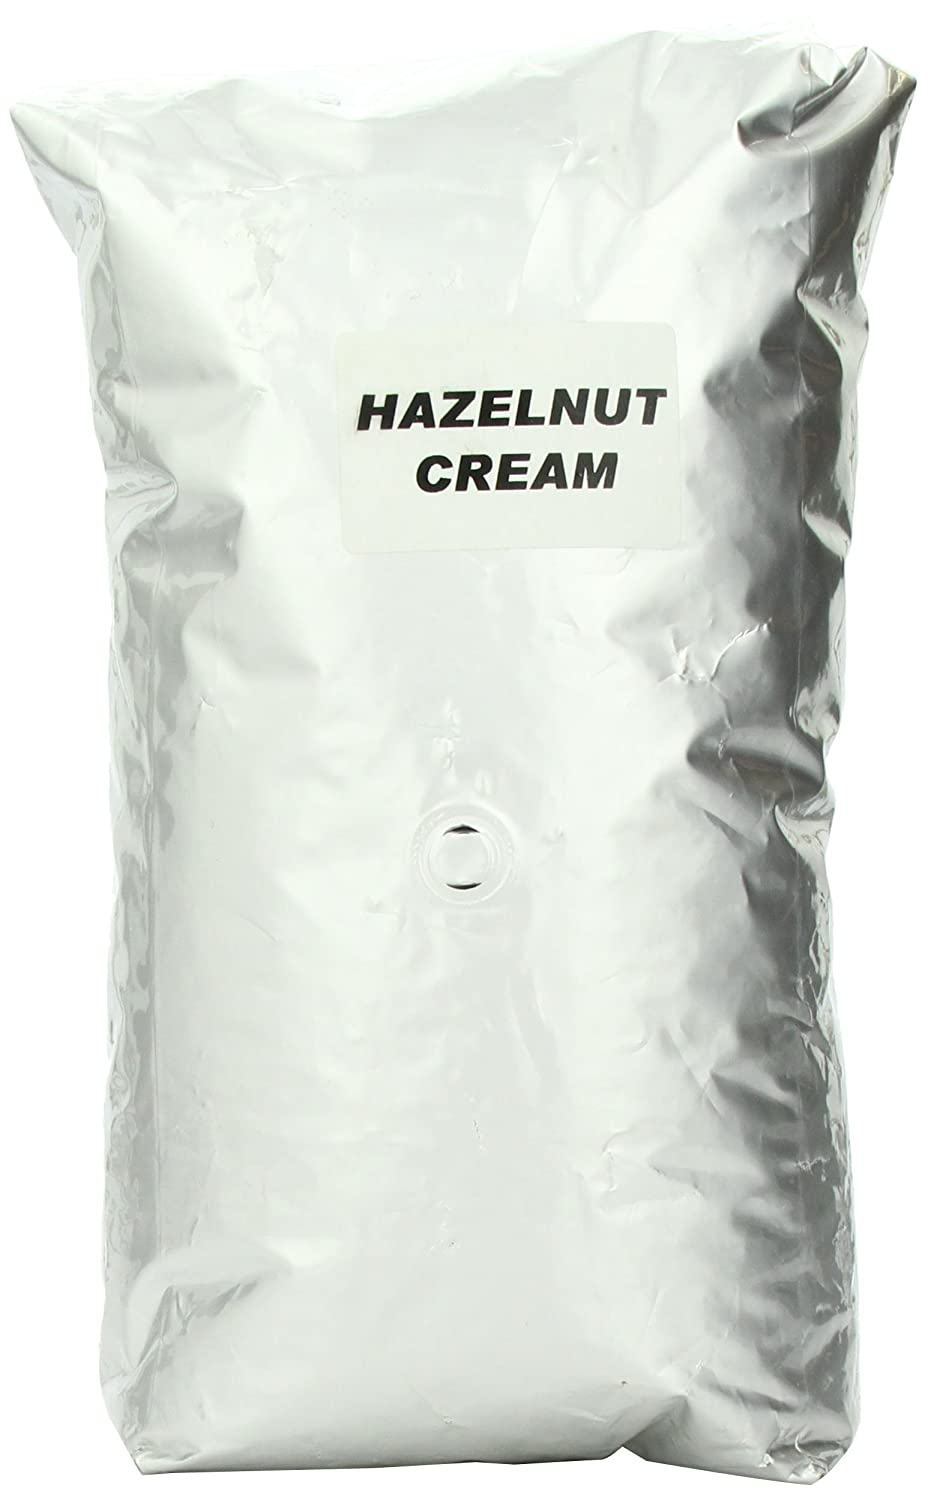 Melitta Hazelnut Crème Flavored Coffee, Medium Roast, Whole Bean Coffee, 5 Pound Bag